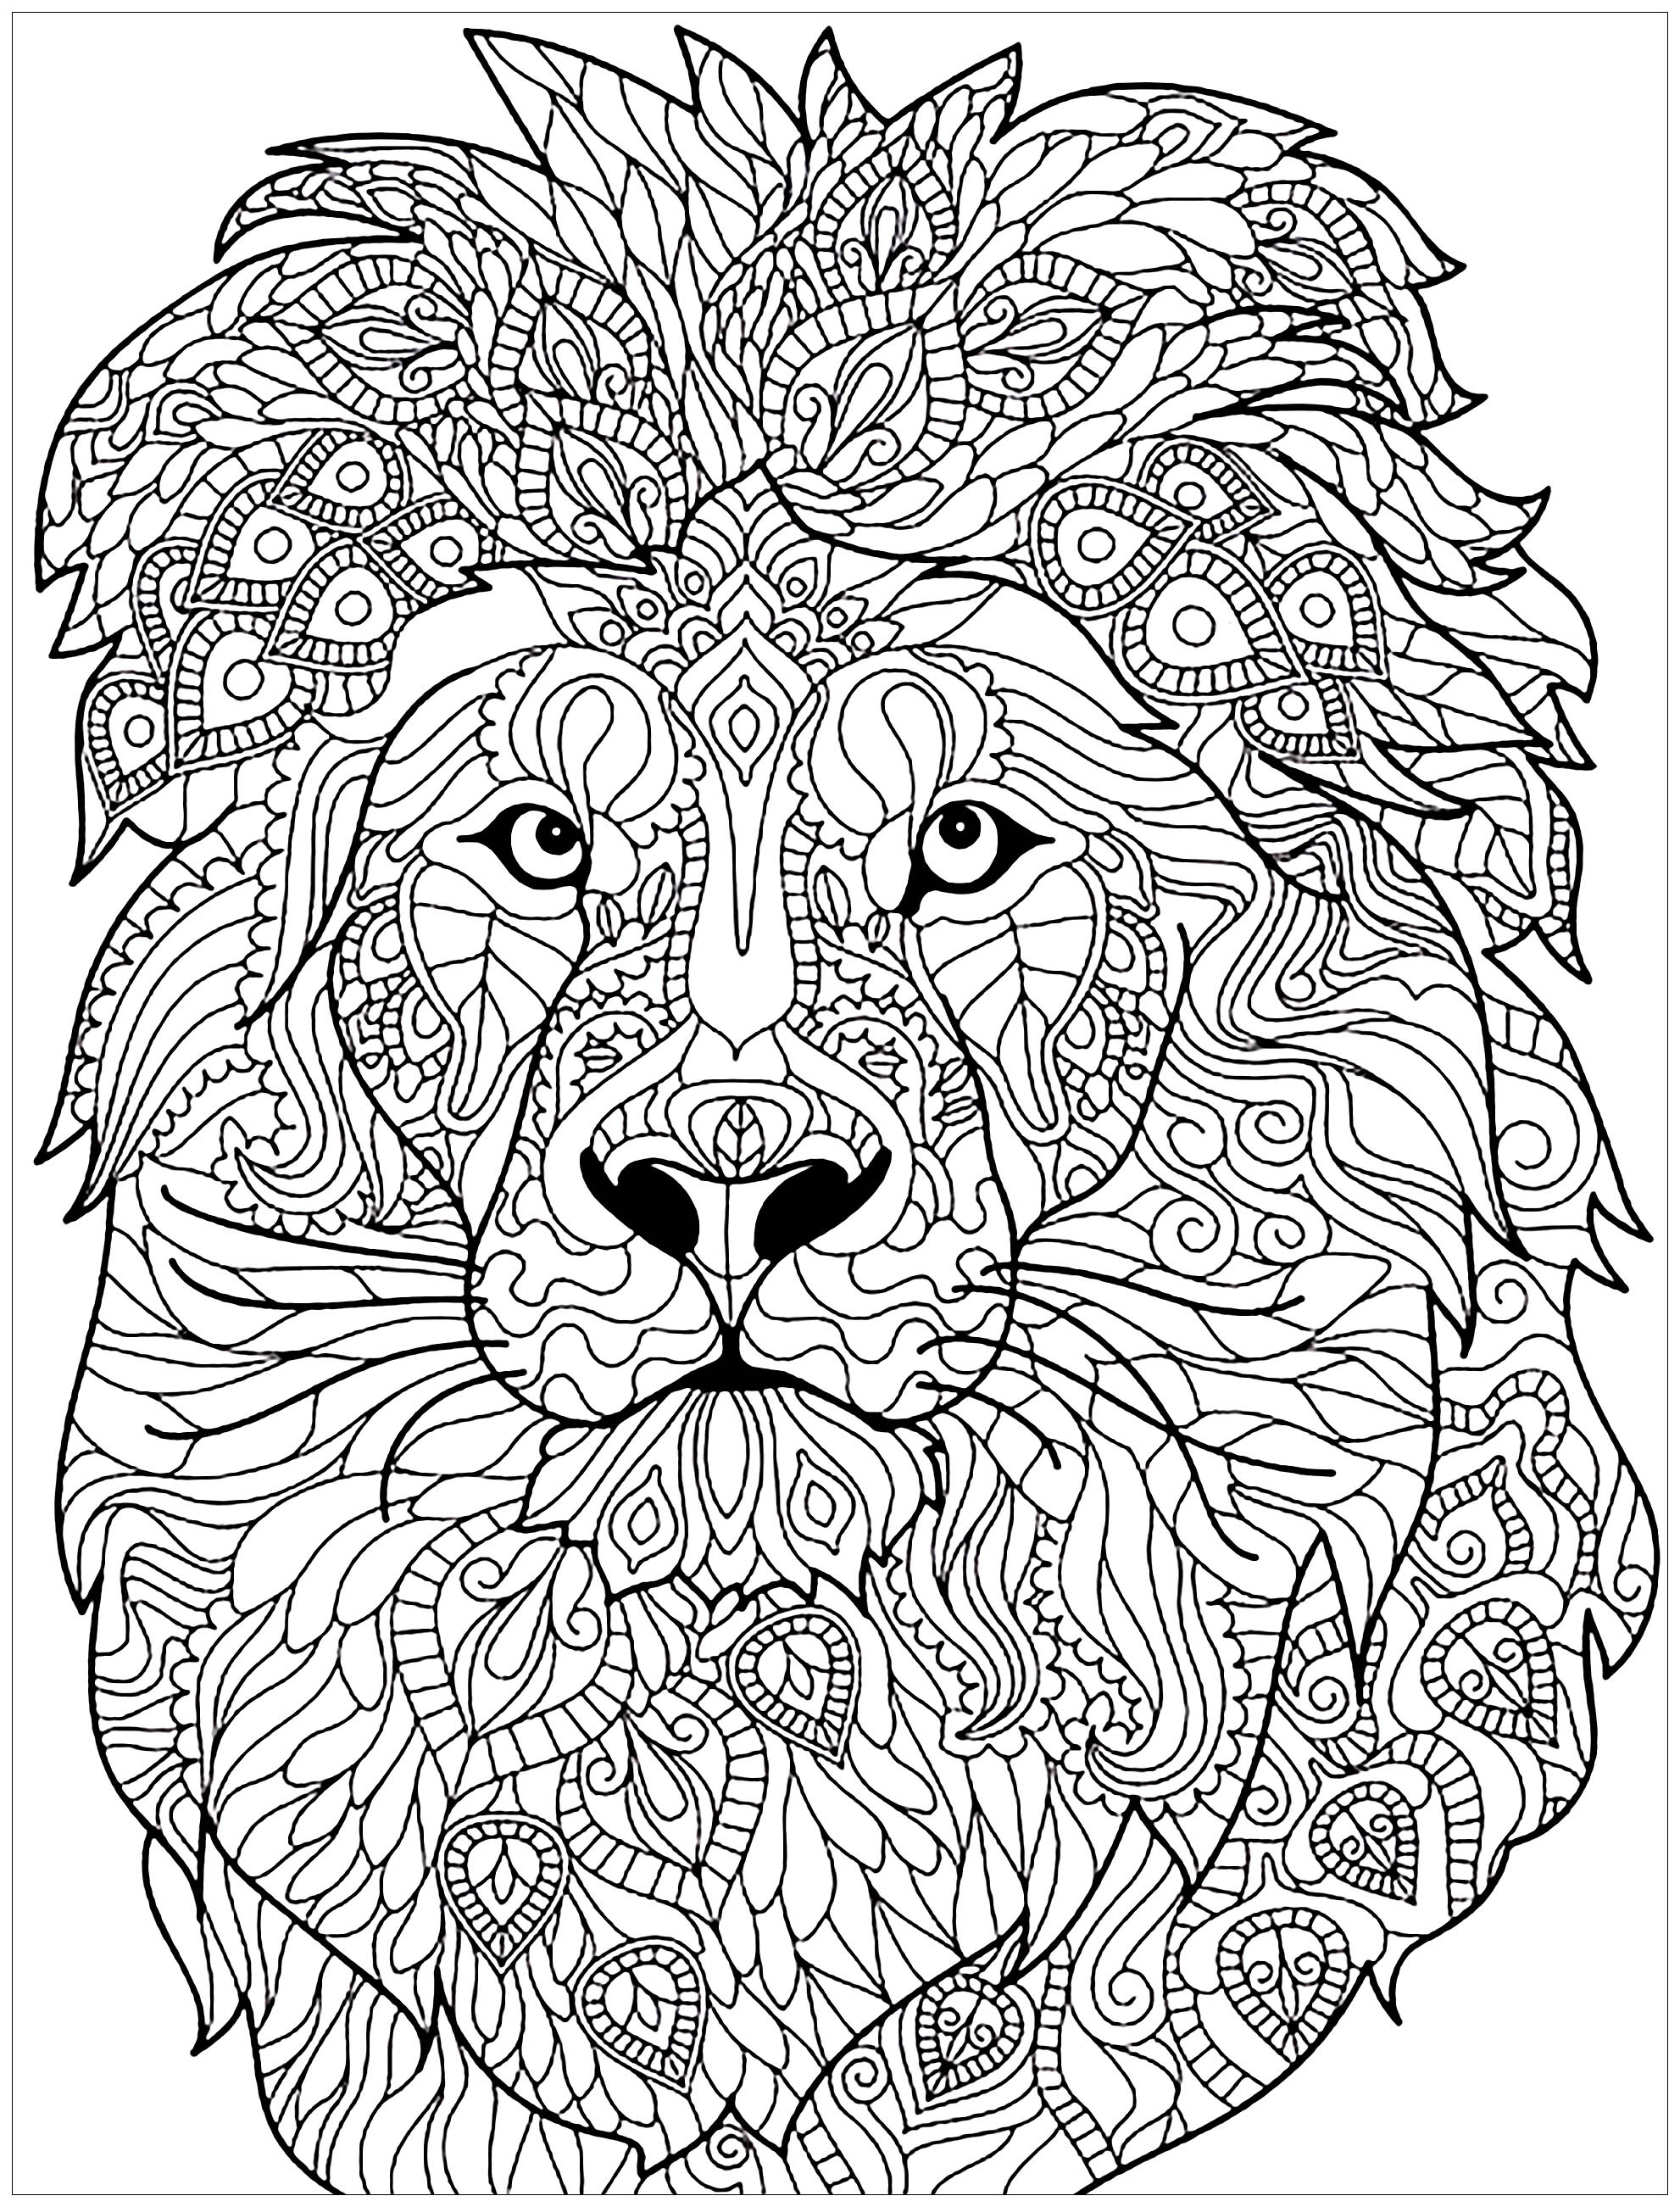 Lion Complex Patterns - Lions Adult Coloring Pages à Coloriage Pour Adulte